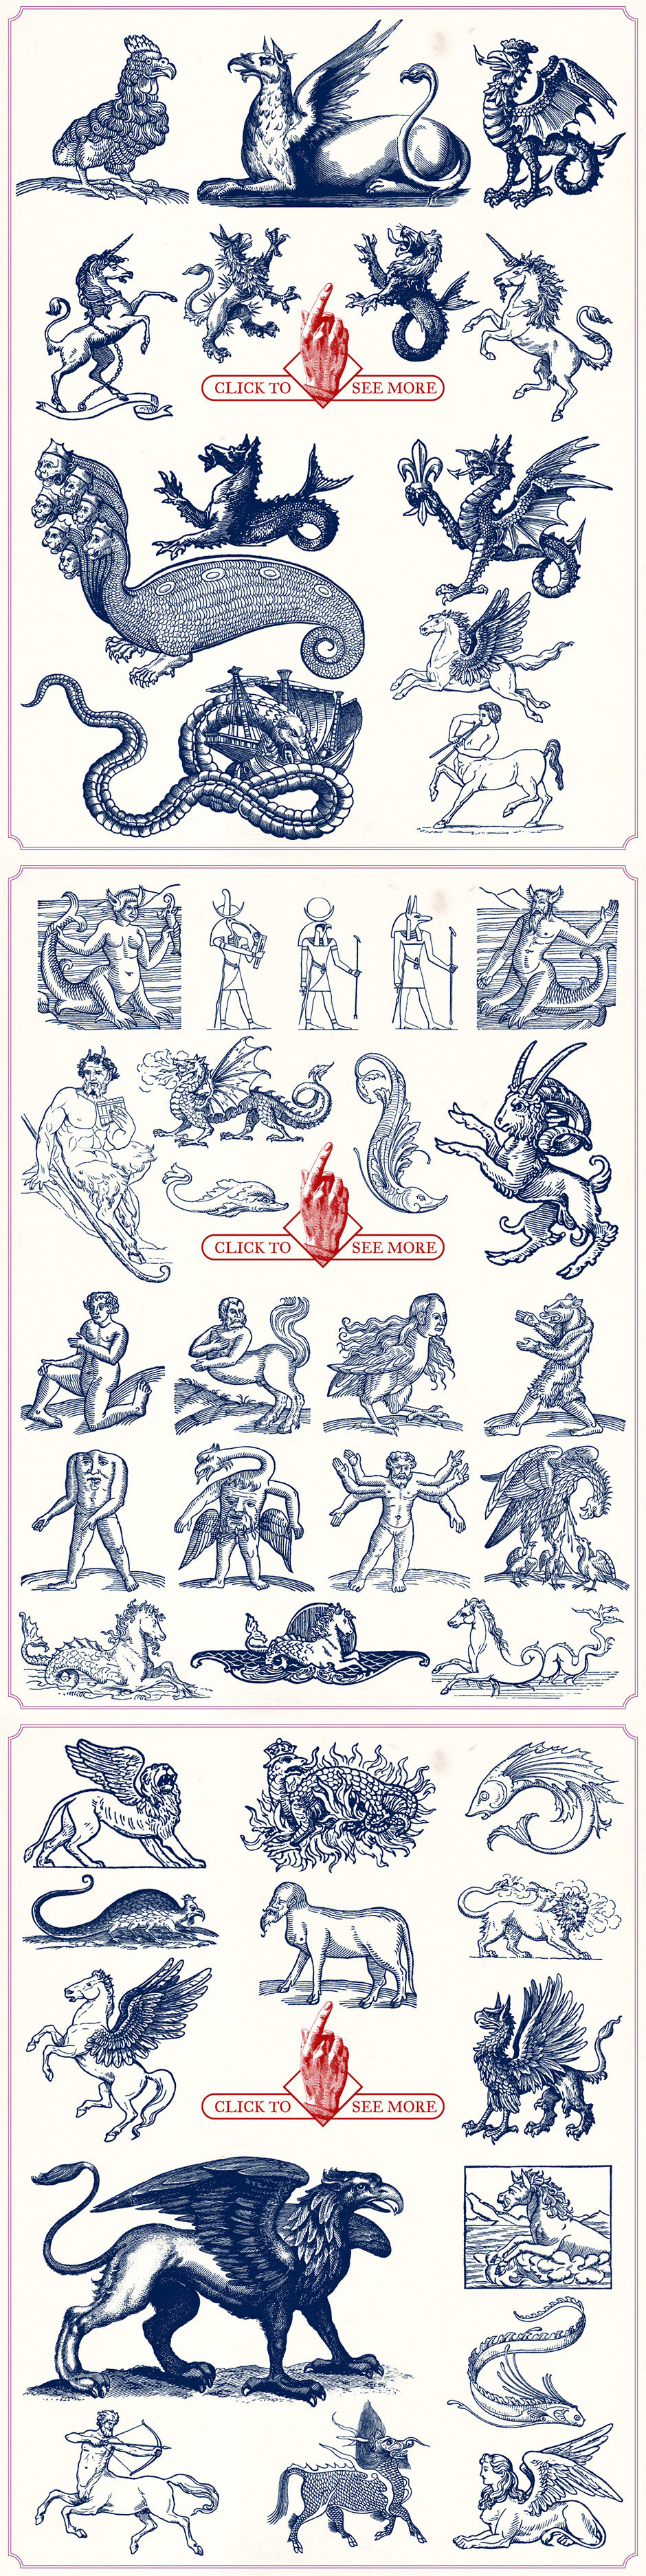 vintage mythological beasts